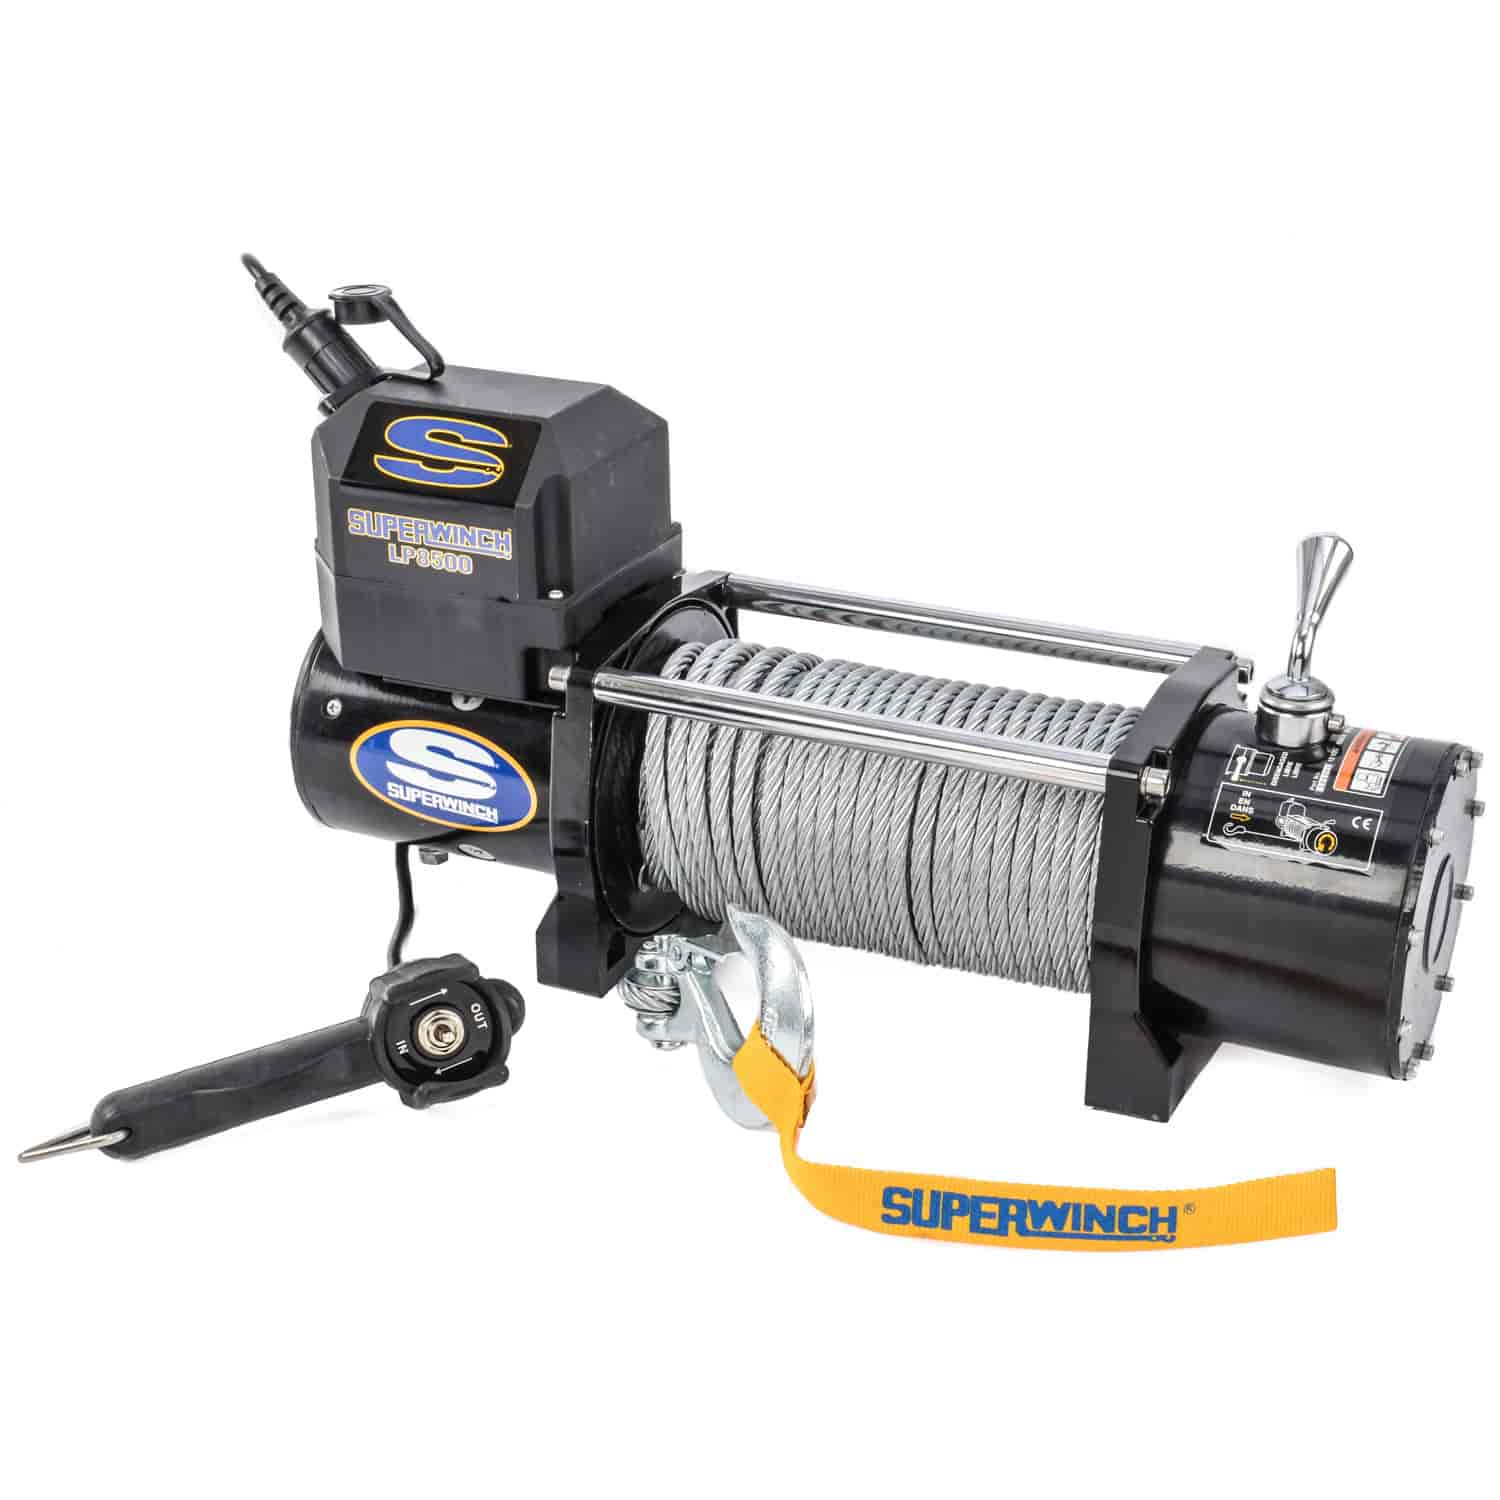 superwinch 1585202 lp8500 winch rated line pull 8 500 lbs jegs Superwinch Wiring-Diagram superwinch 1585202